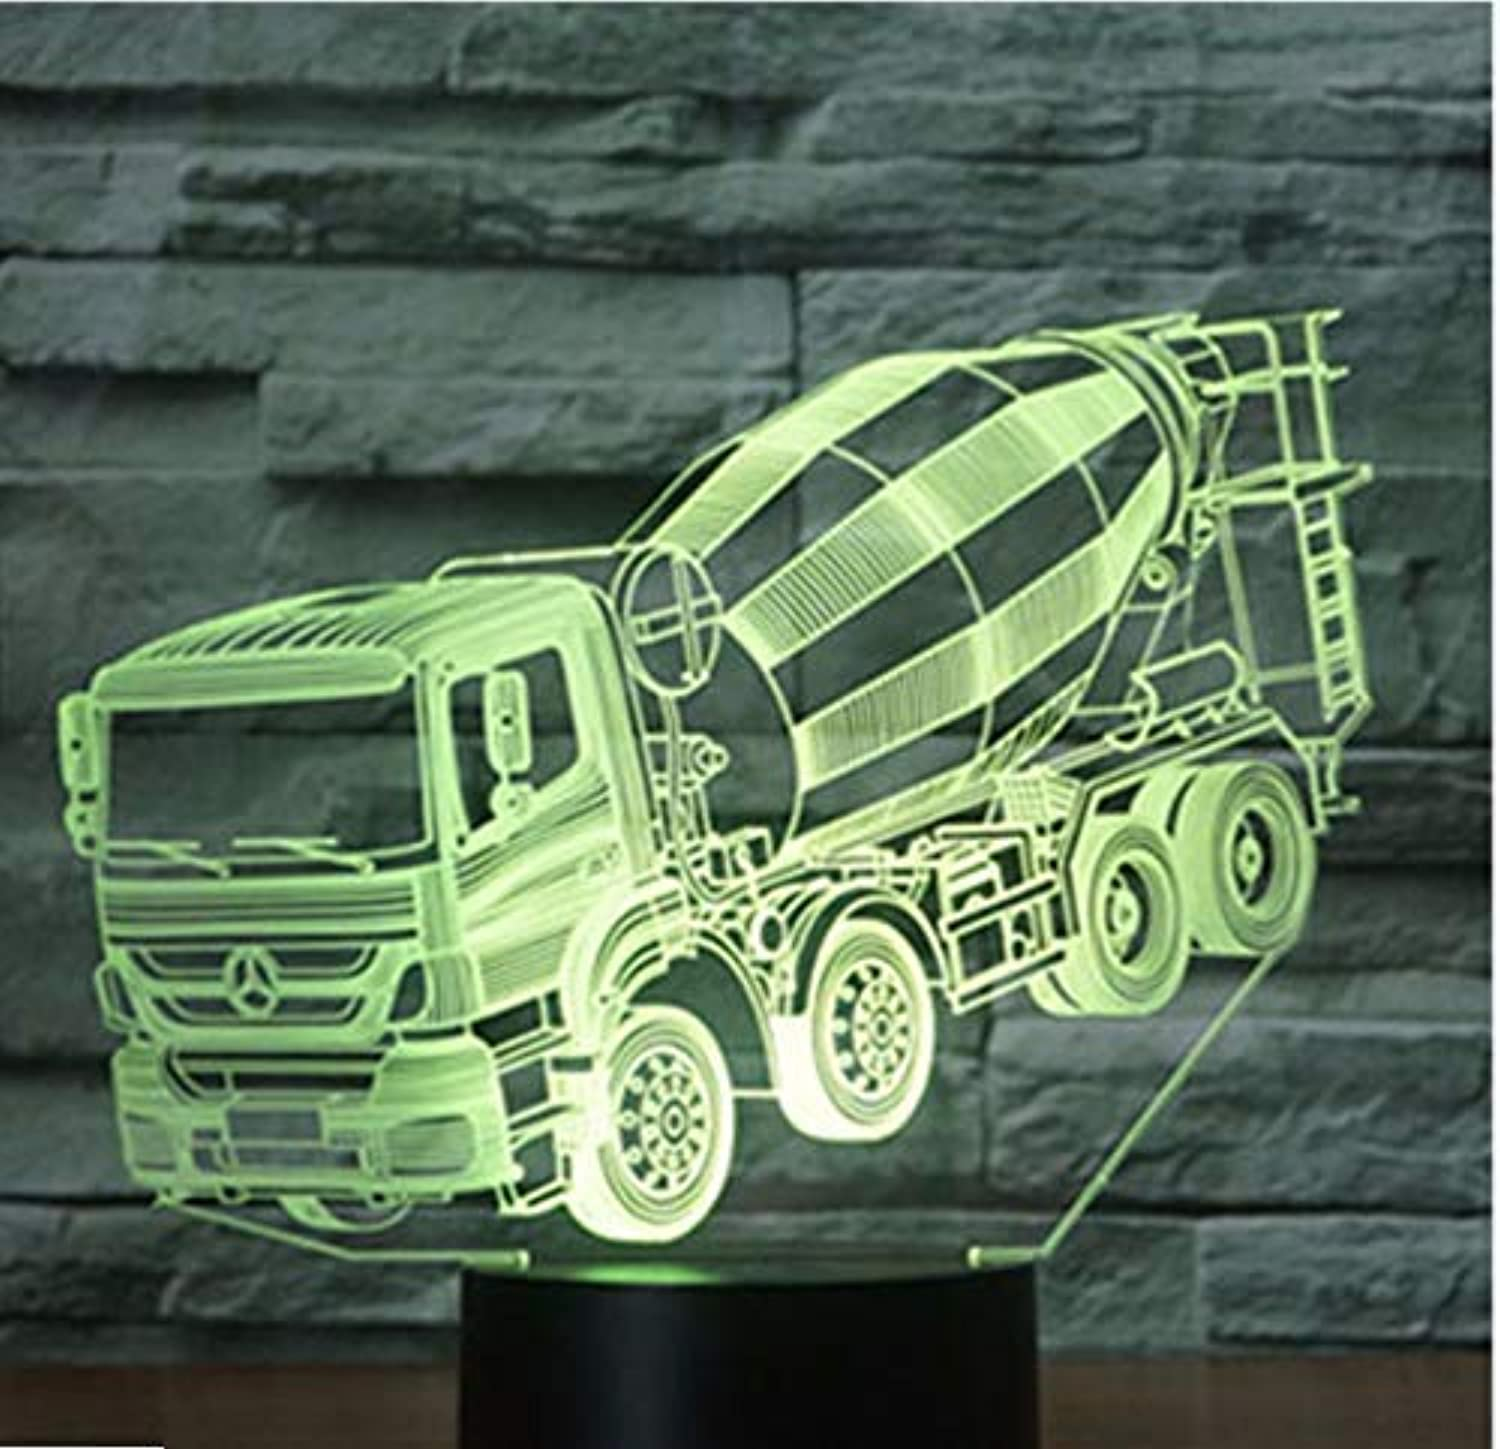 BMY 3D Led Night Light Mud Shrub Car with 7 colors Light for Home Decoration Lamp Amazing Visualization Optical Illusion Awesome